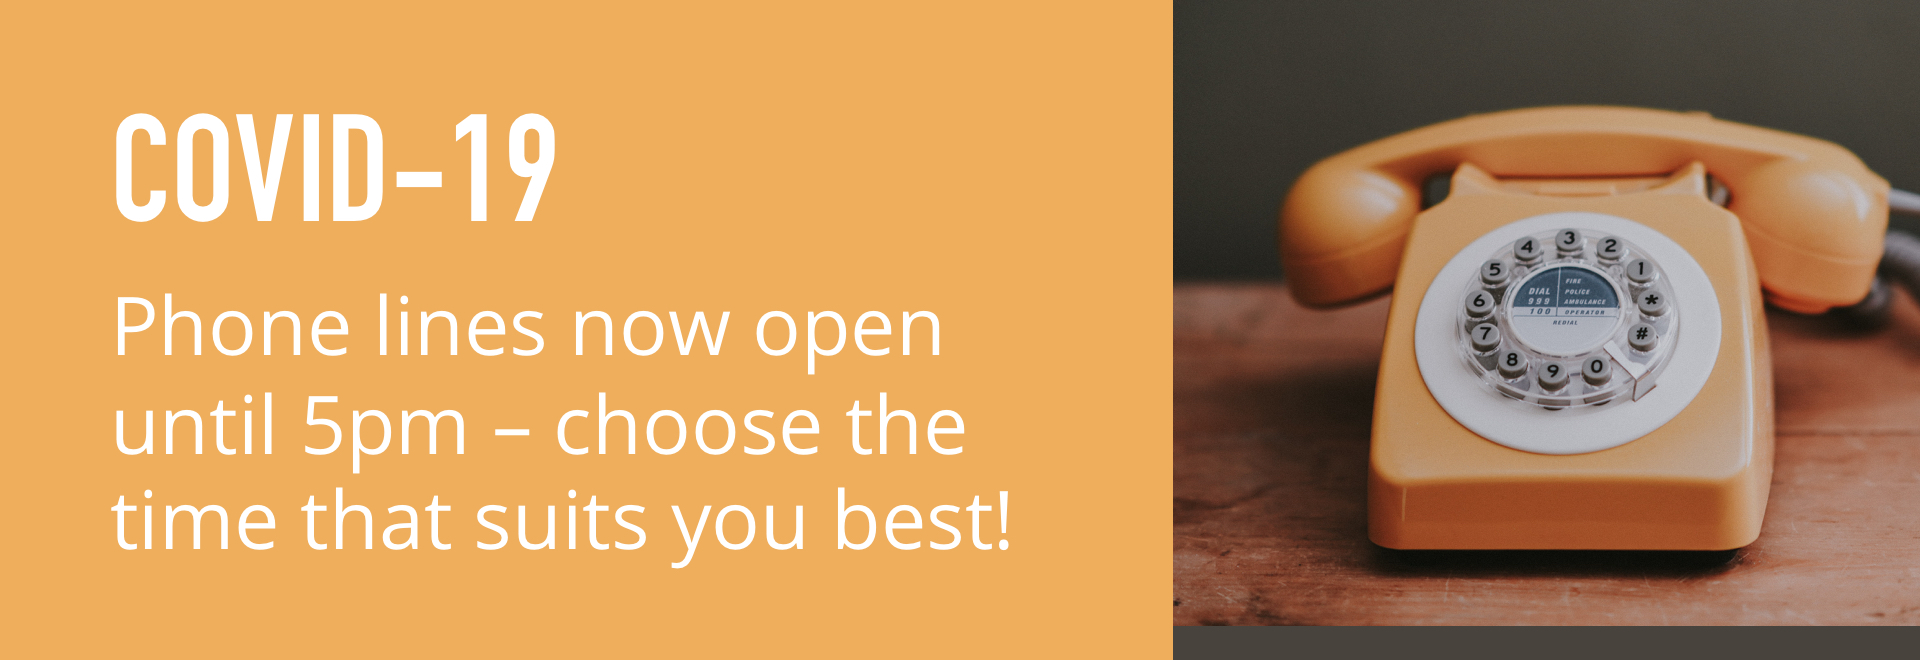 COVID-19. Phone lines now open until 5pm - choose the time that suits you best!